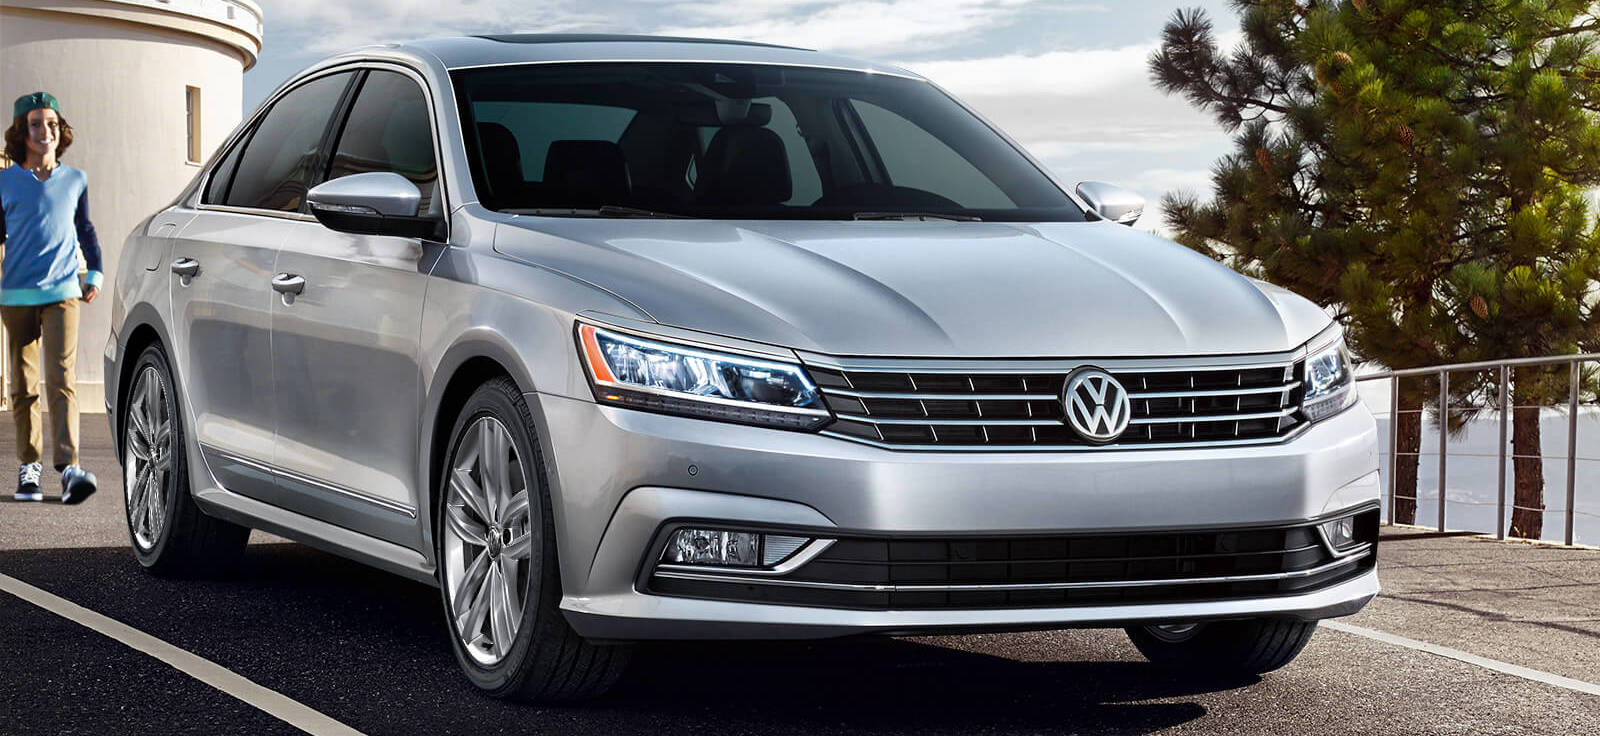 Used Volkswagen Passat for Sale near Laurel, MD